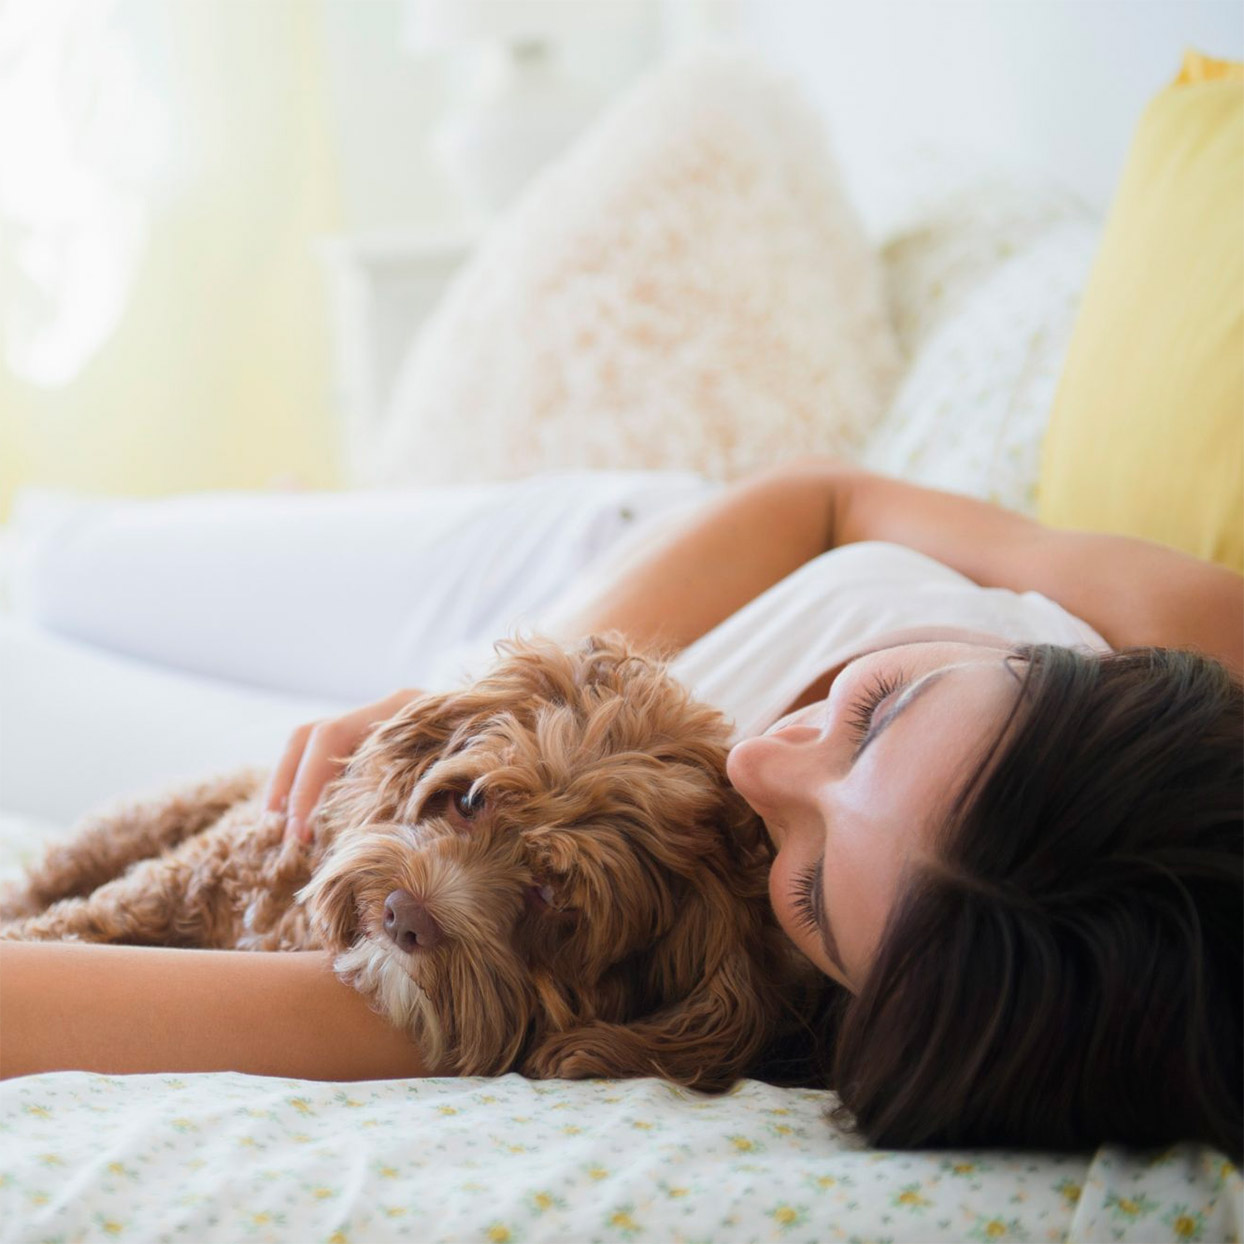 Sleeping With the Dog Is Better Than Sleeping With a Partner for Most Women